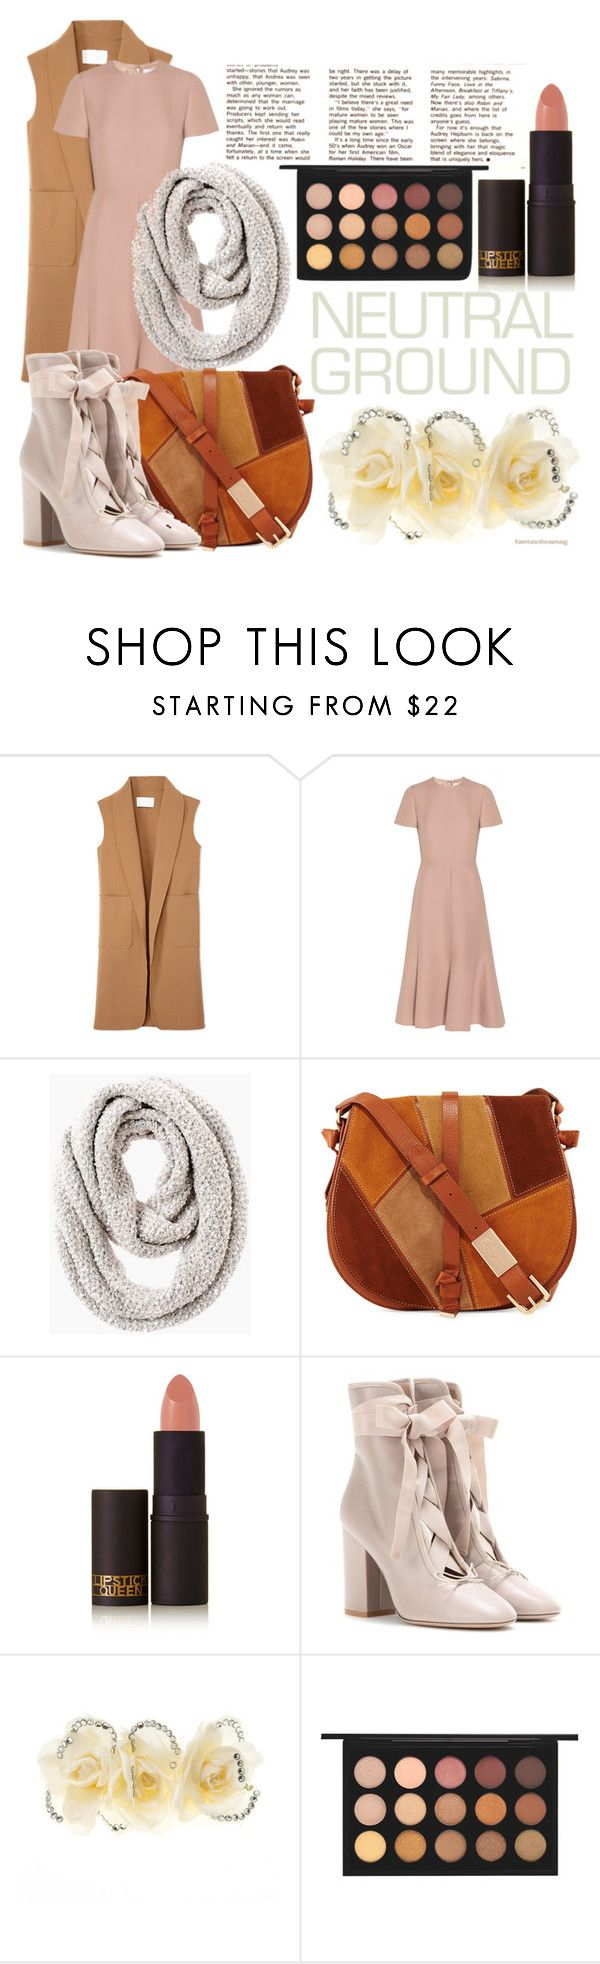 """Cool Neutrals"" by chezqah-agnir ❤ liked on Polyvore featuring Alexander Wang, Valentino, Chico's, Foley + Corinna, Lipstick Queen, Johnny Loves Rosie and MAC Cosmetics"